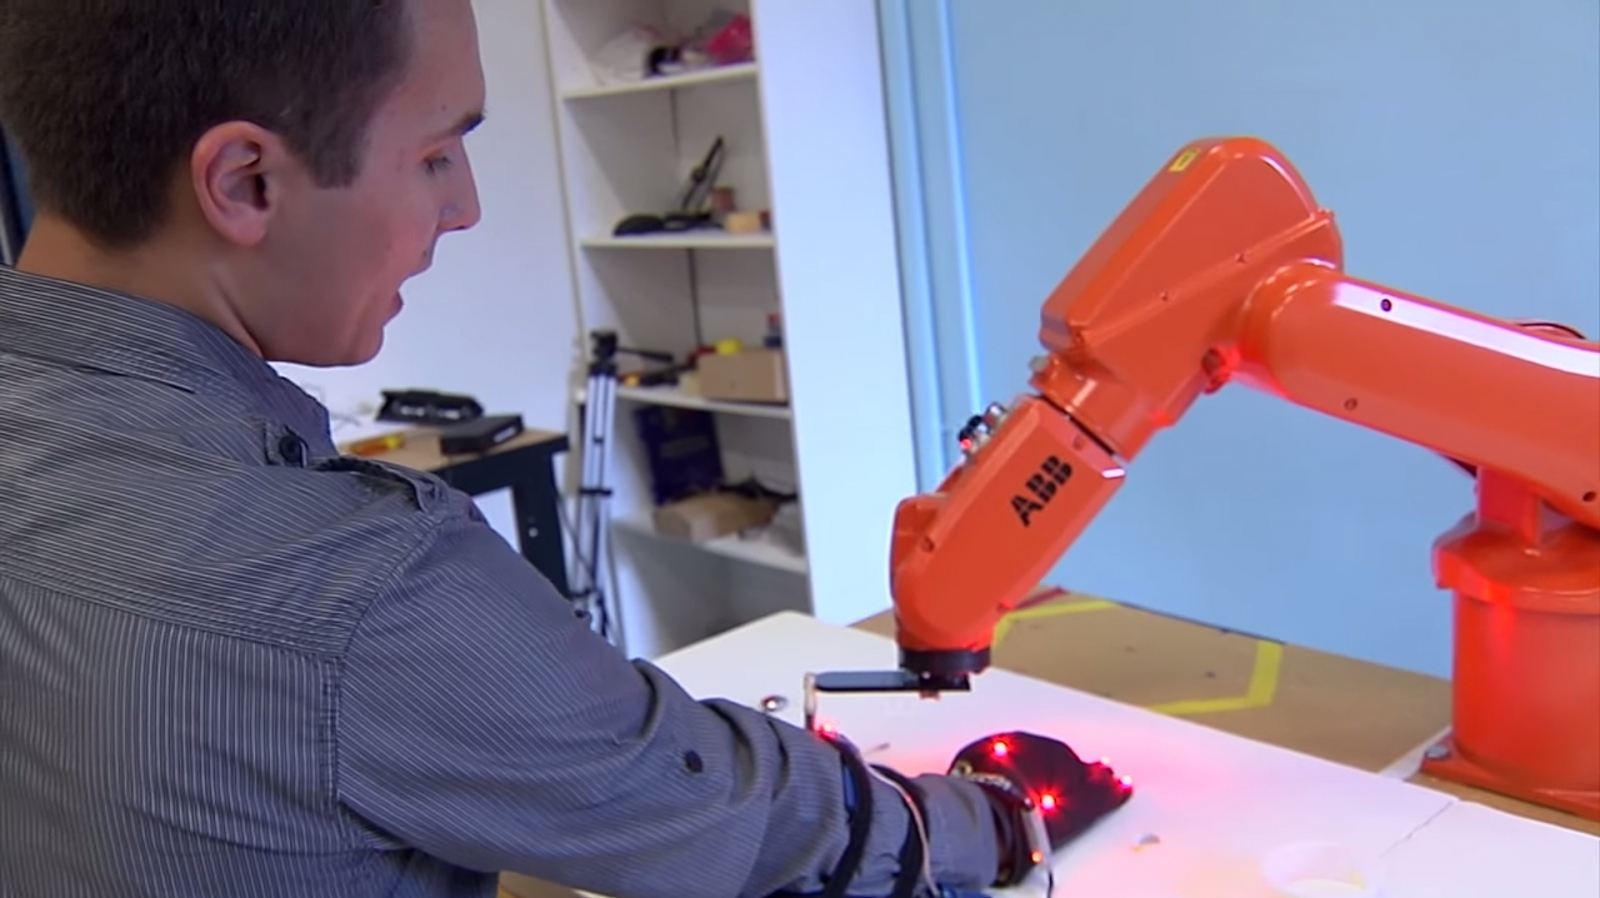 MIT's robot arm working with a researcher